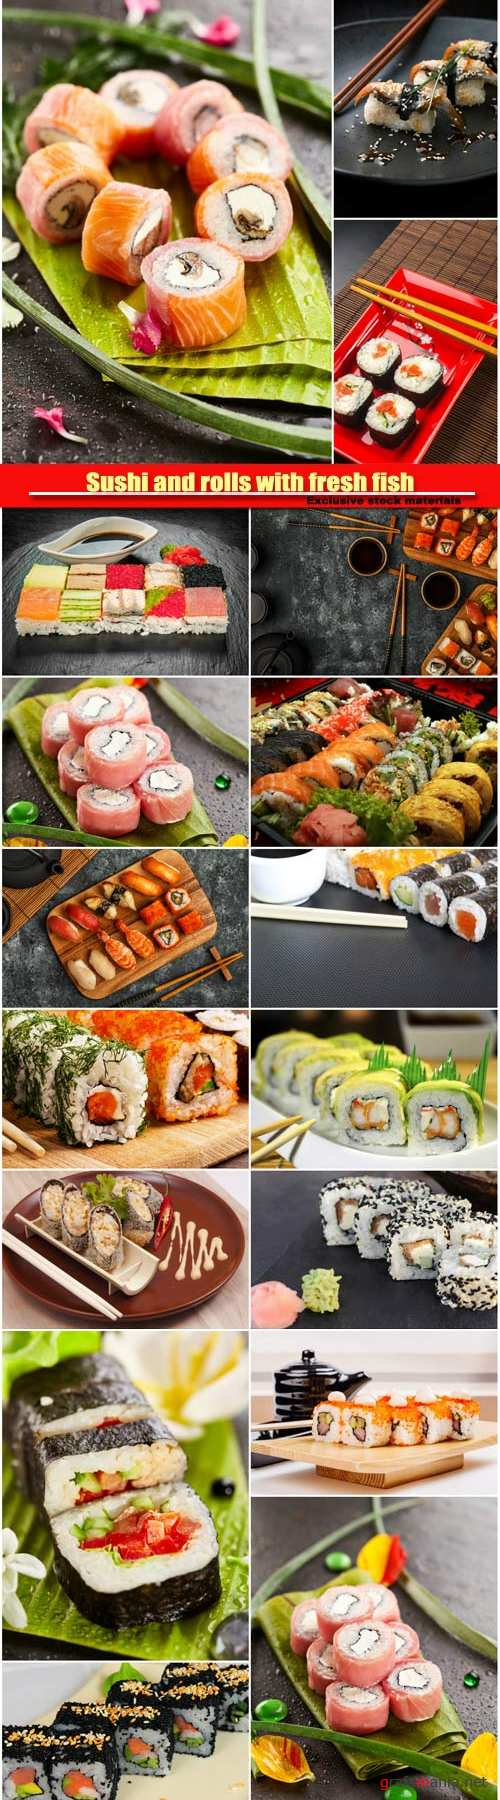 Sushi and rolls with fresh fish, cuisine with fresh seafood